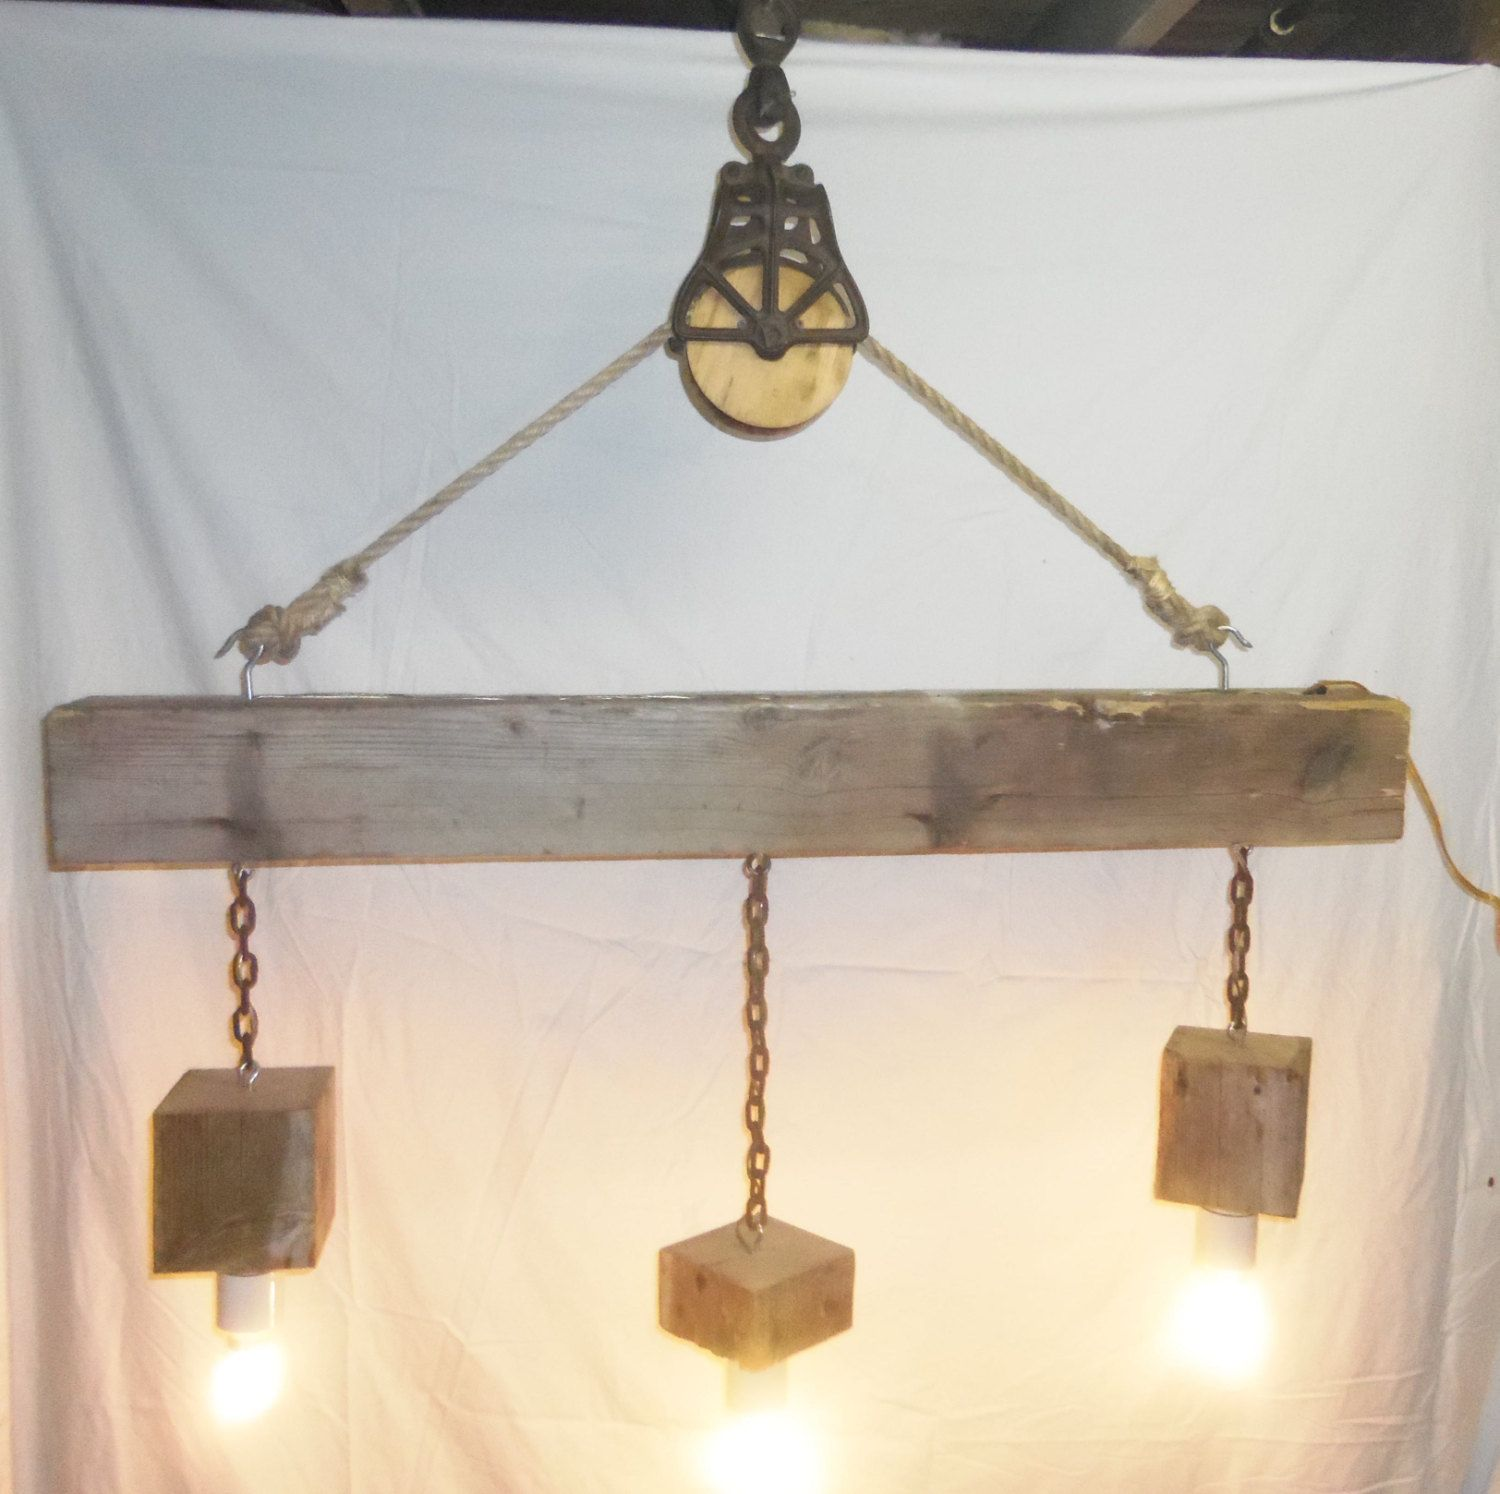 Reclaimed barn beam and pulley 3 light chandelier pulley beams reclaimed barn beam and pulley 3 light chandelier aloadofball Images